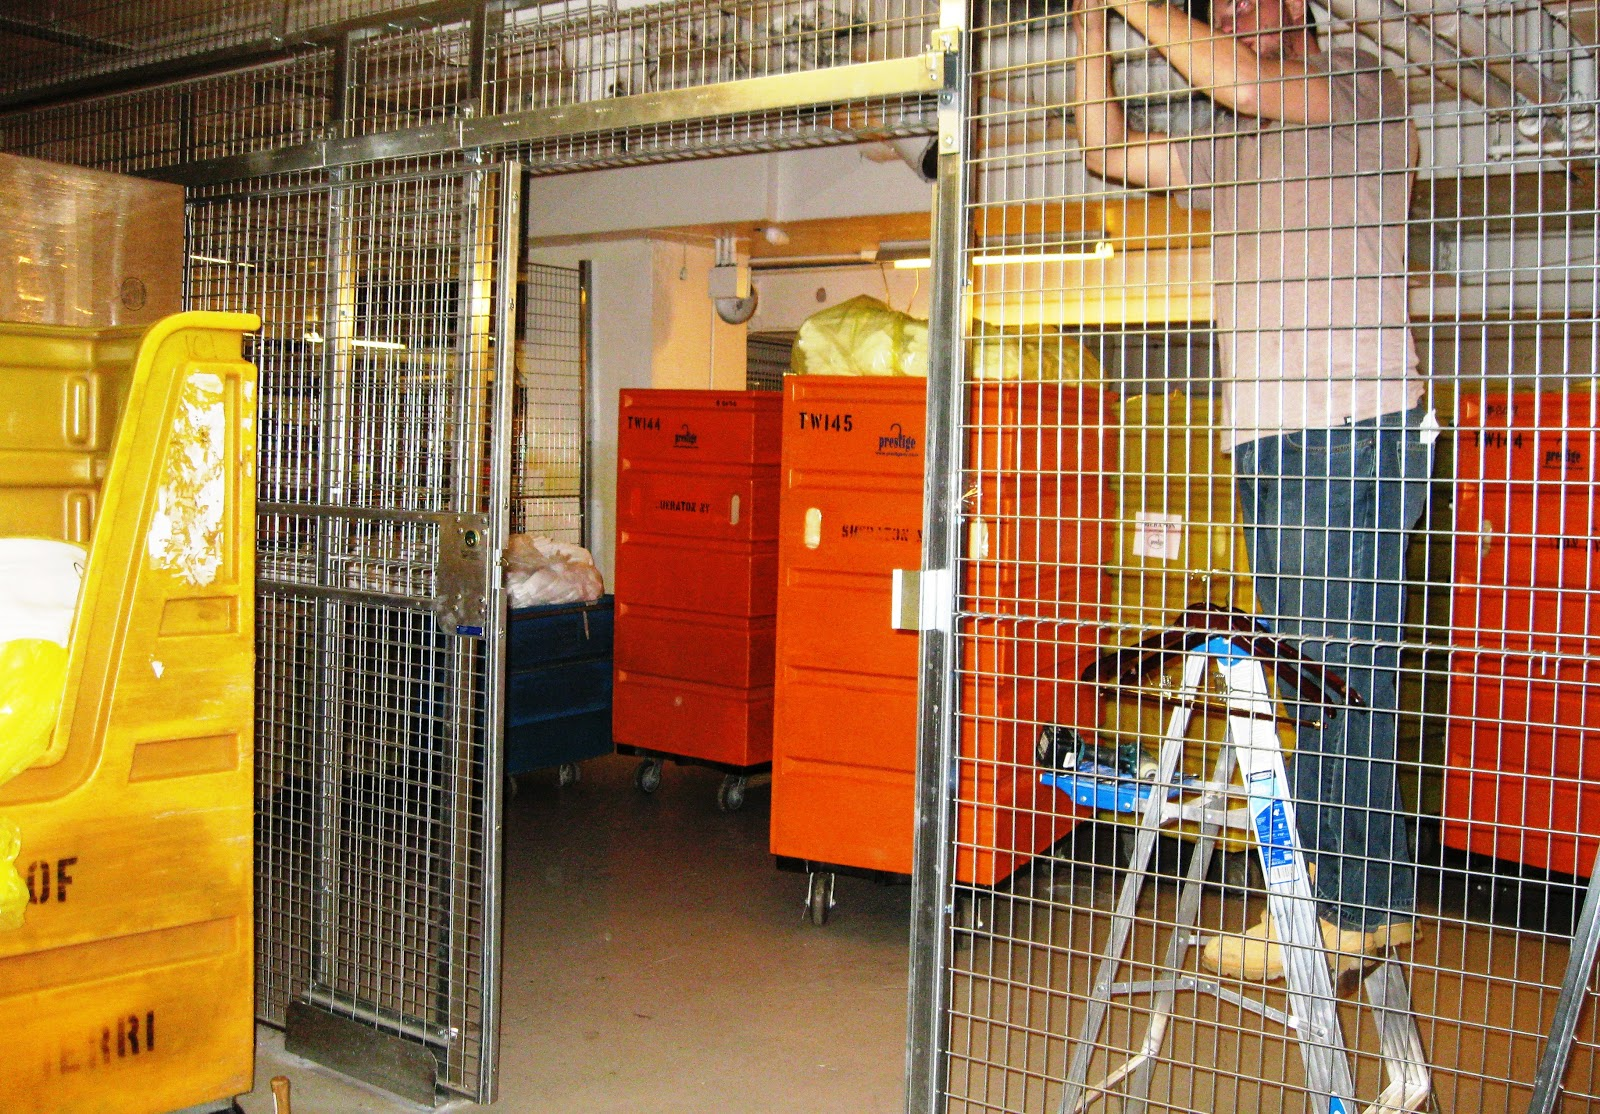 Trattoria Dell'arte Nyc Menu Tenant Storage Cages New York City How To Prevent